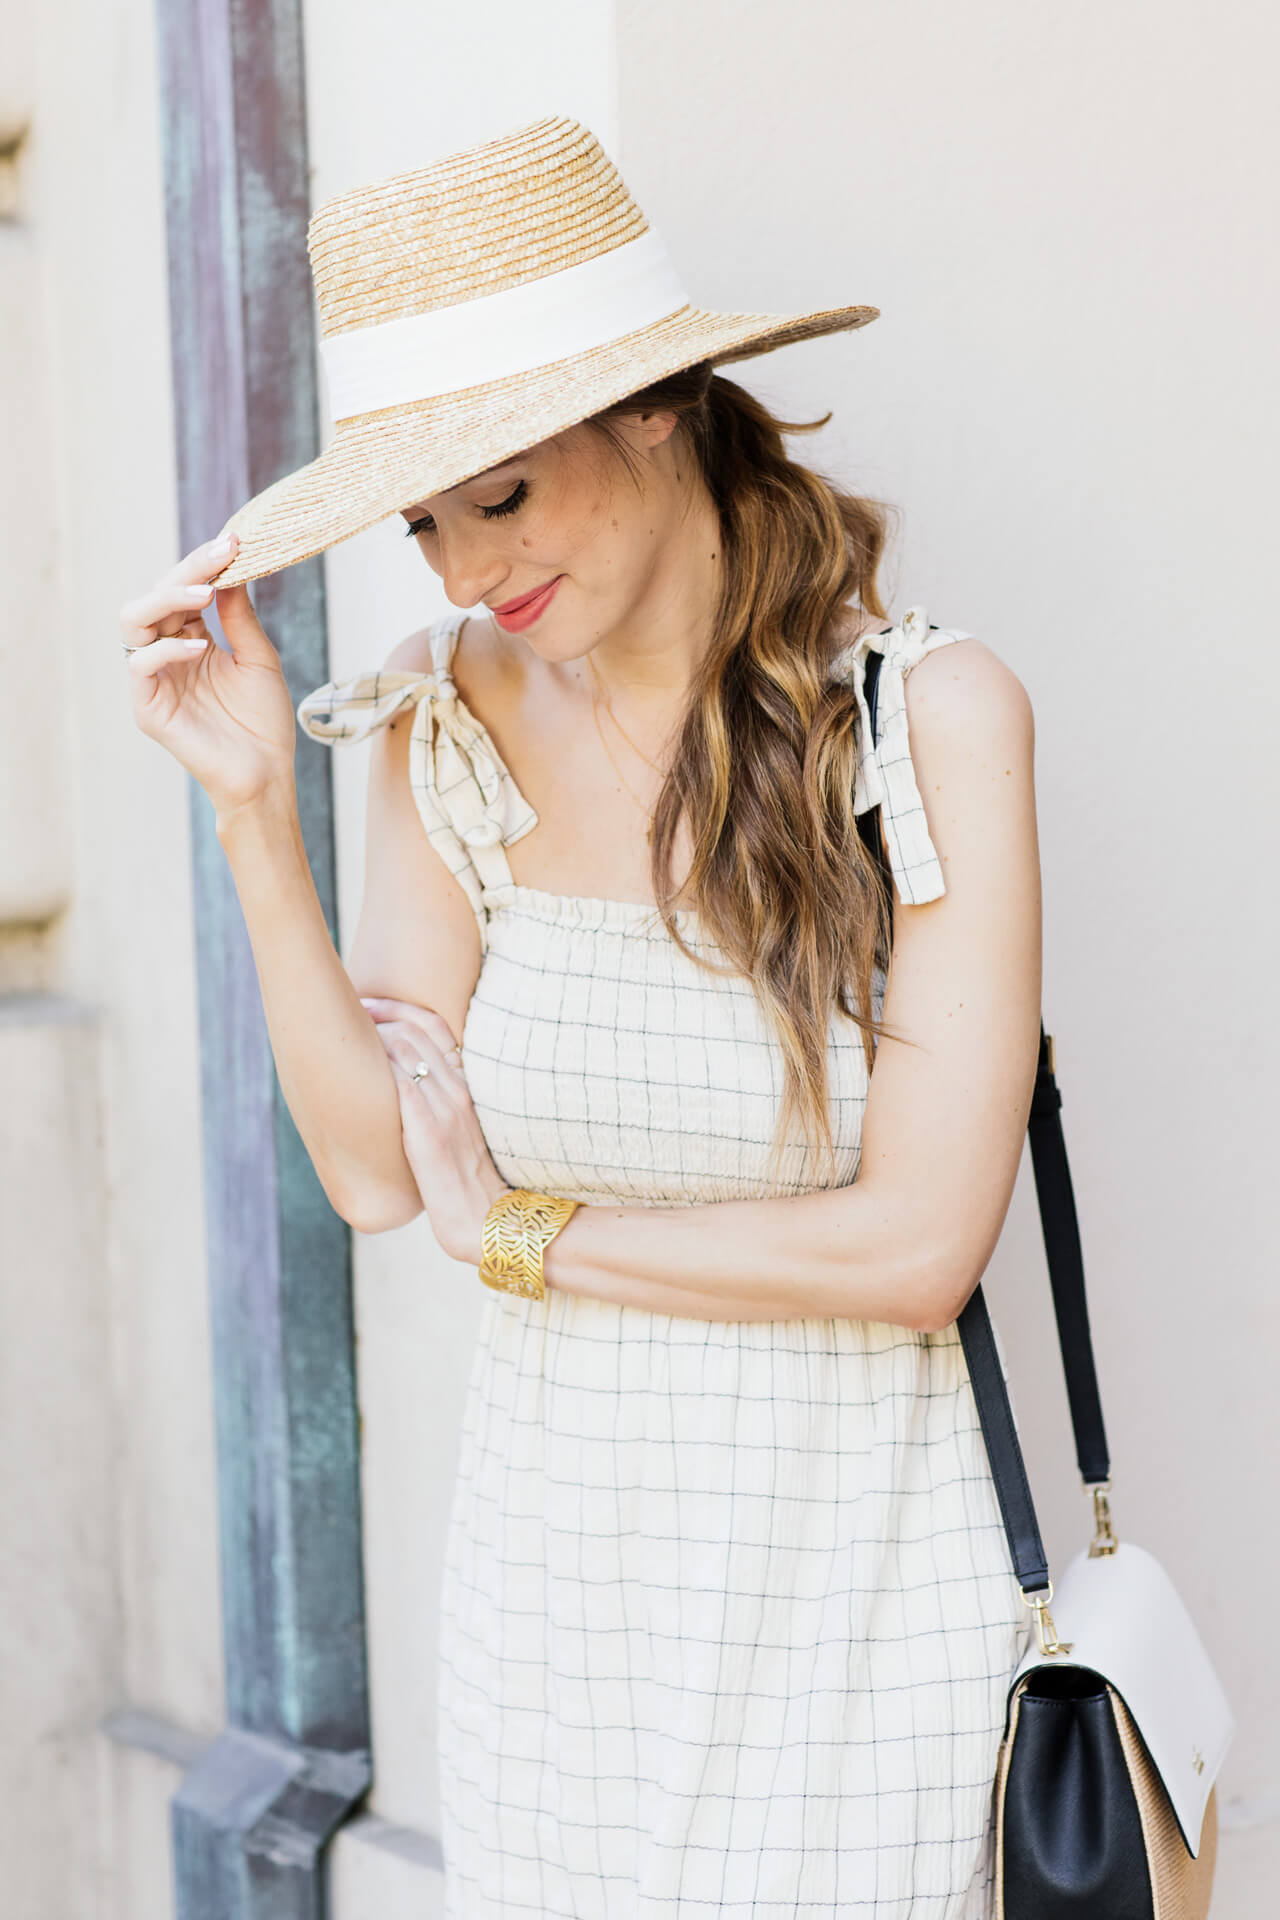 How to wear a straw hat for summer